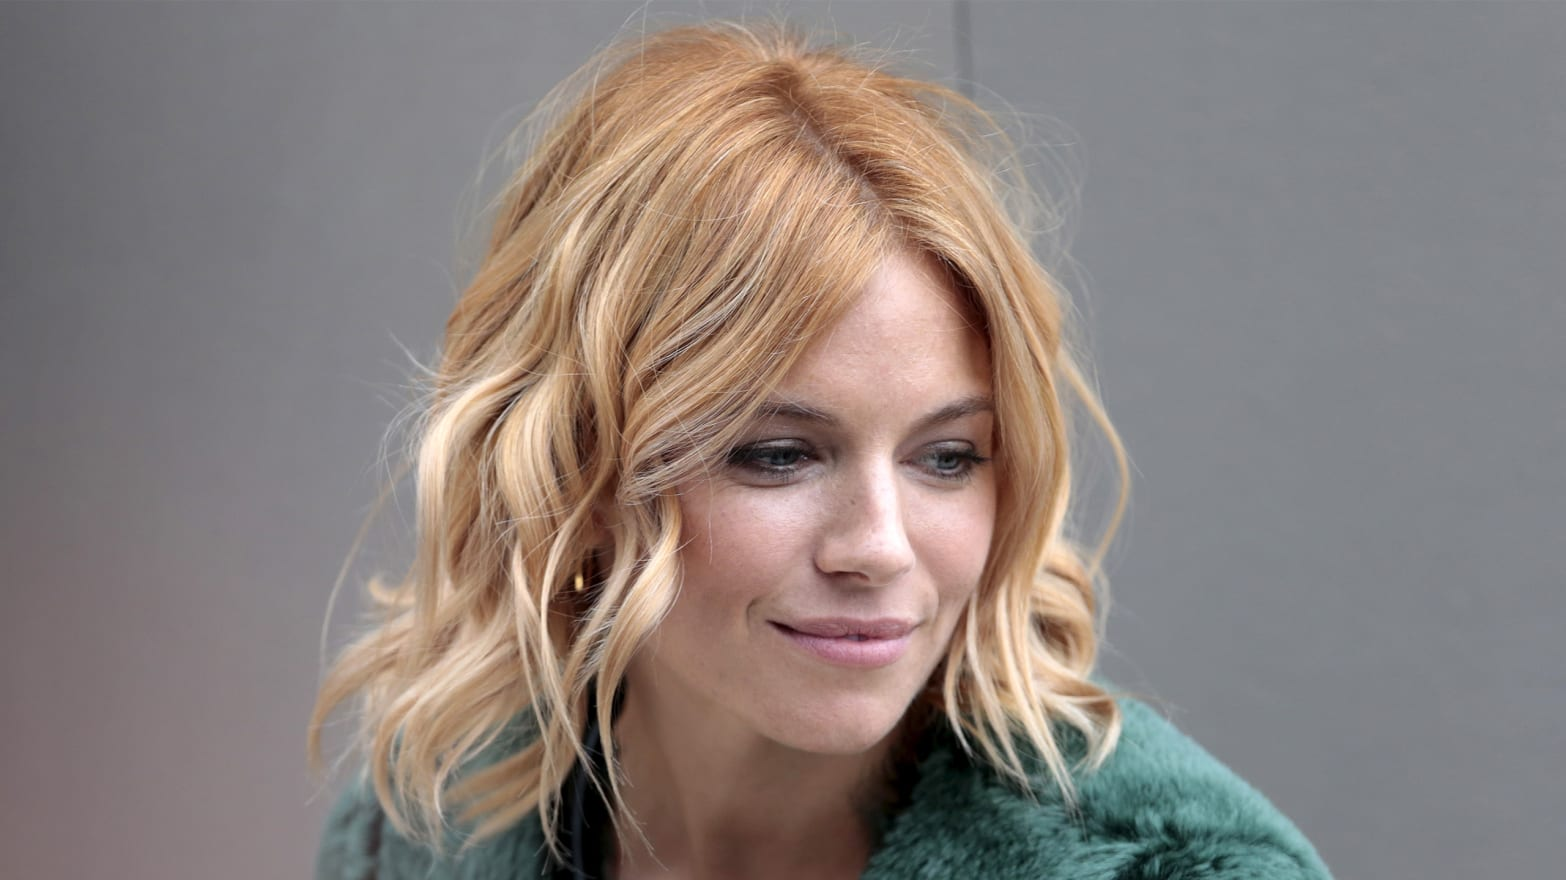 Sienna Miller nude (34 photos), hot Boobs, Snapchat, in bikini 2016